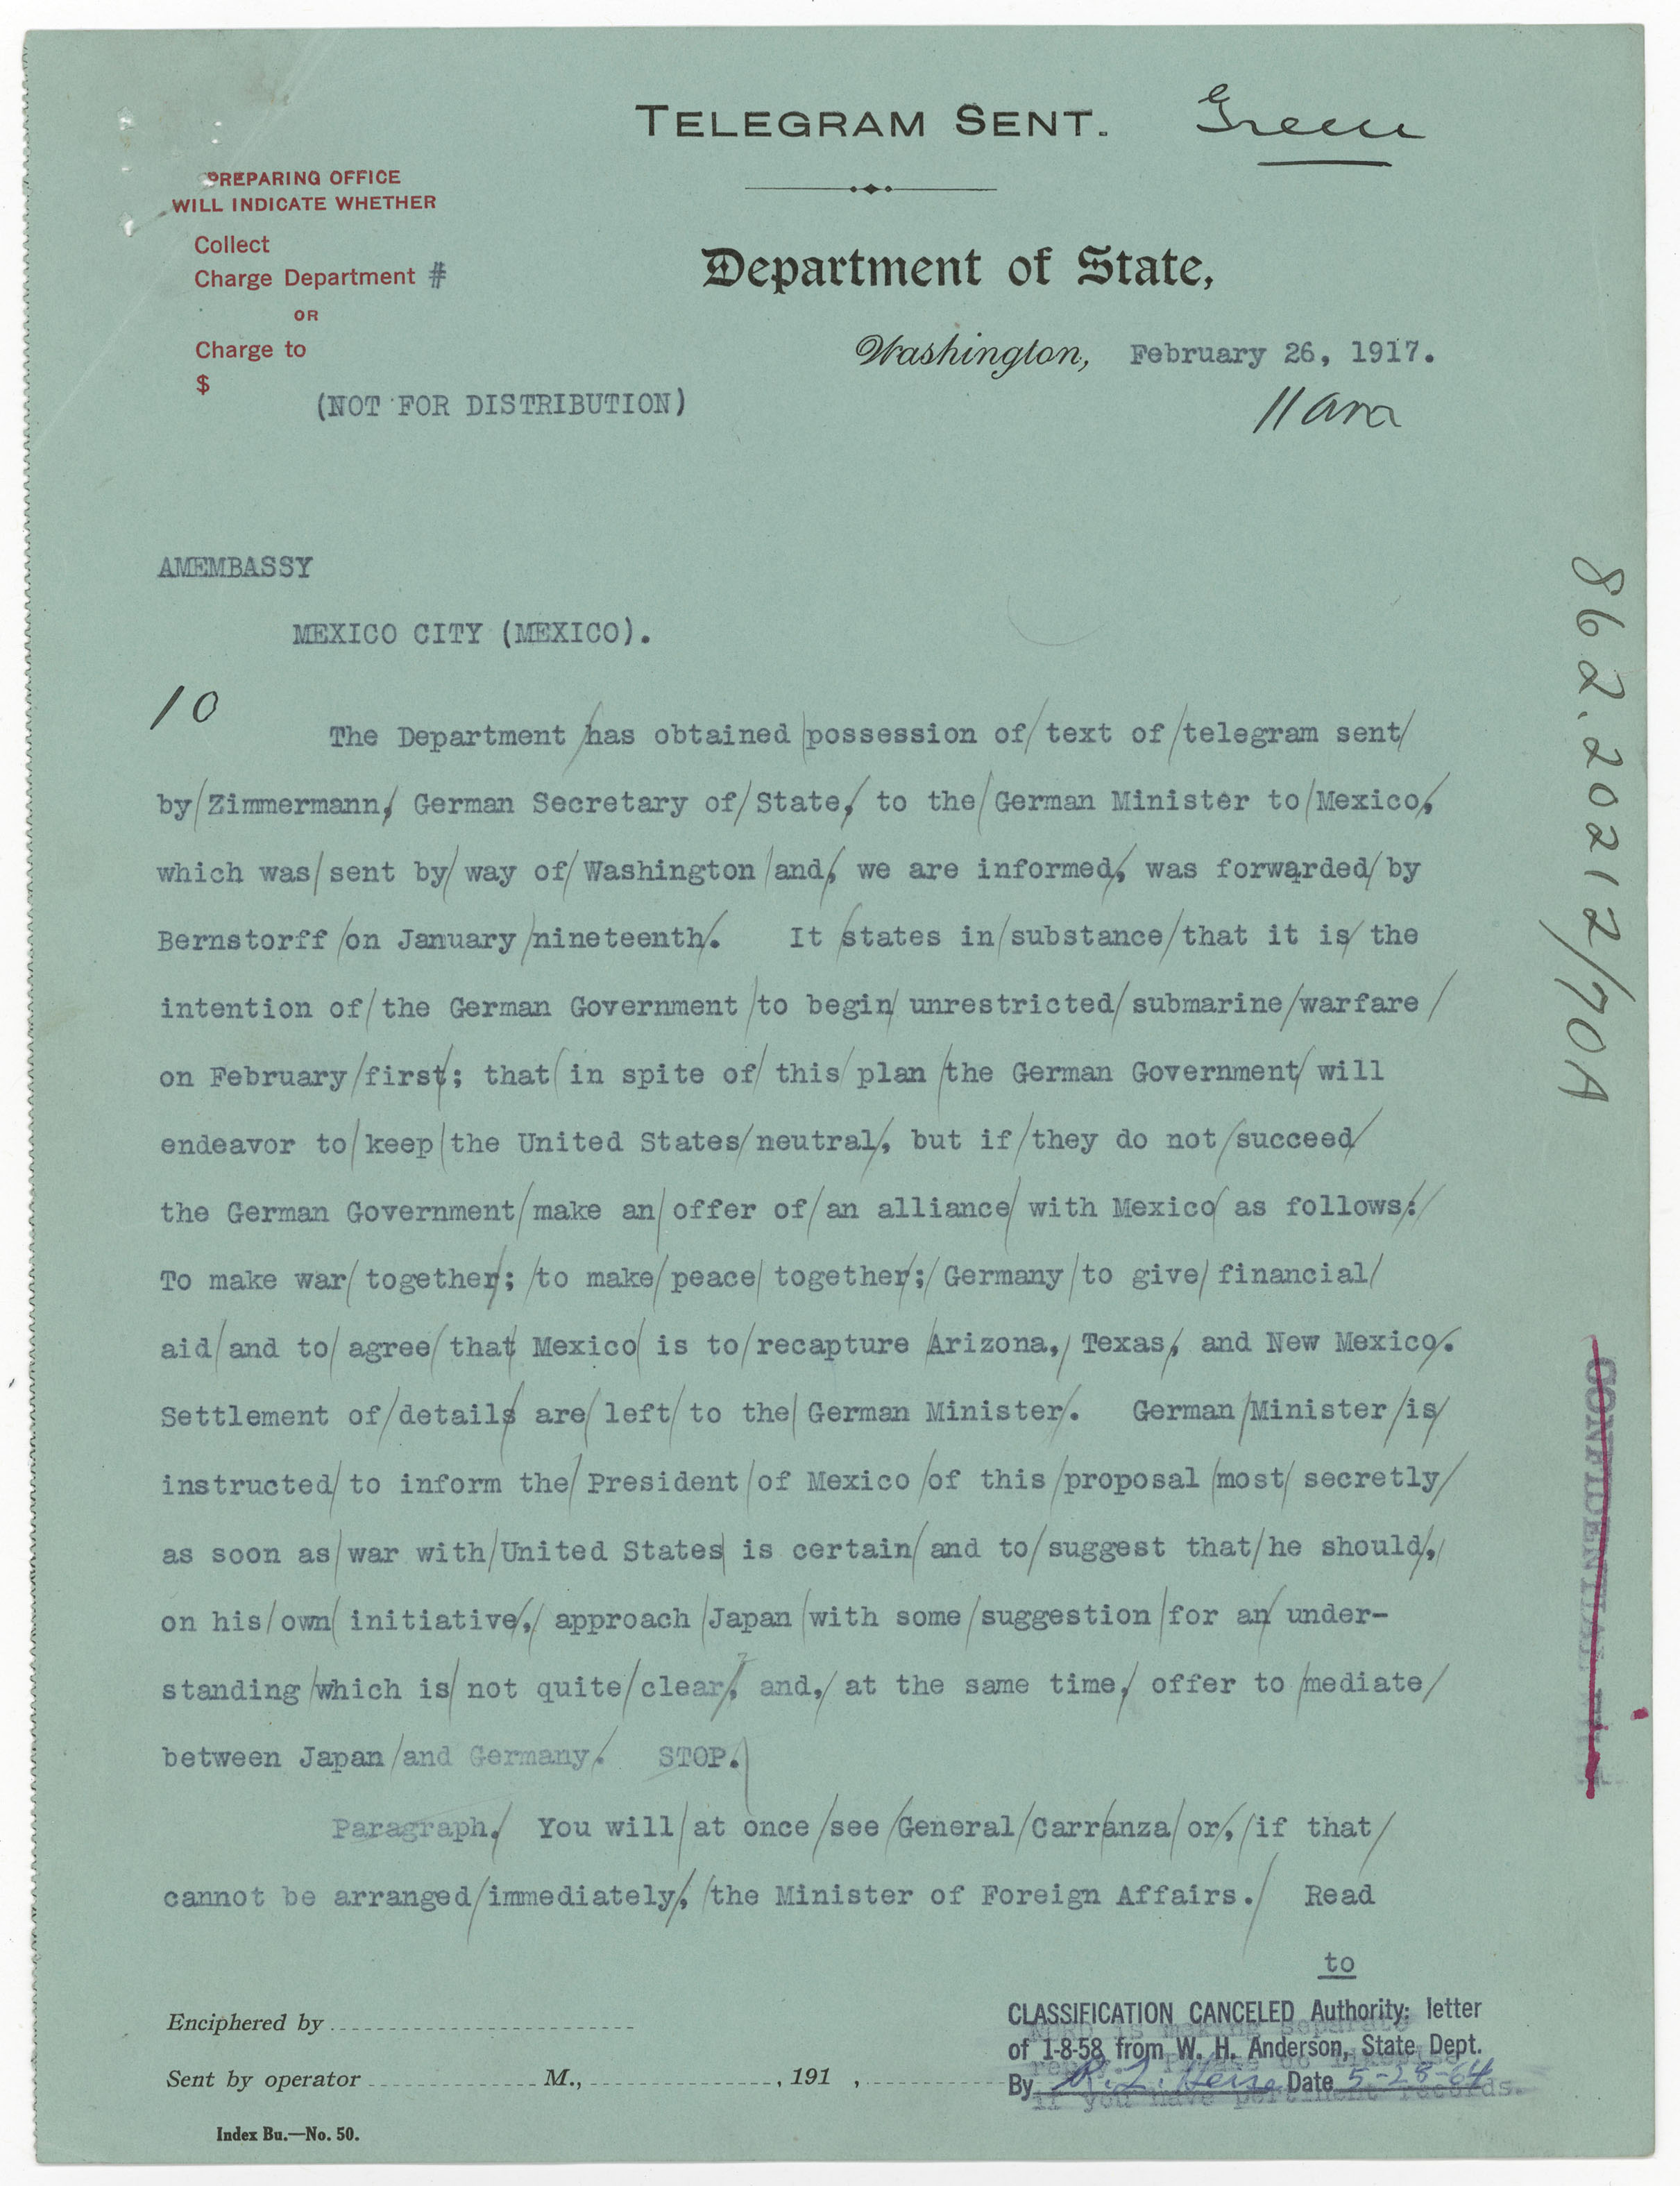 Telegram from Acting Secretary of State Frank L. Polk to the American Embassy in Mexico City, February 26, 1917